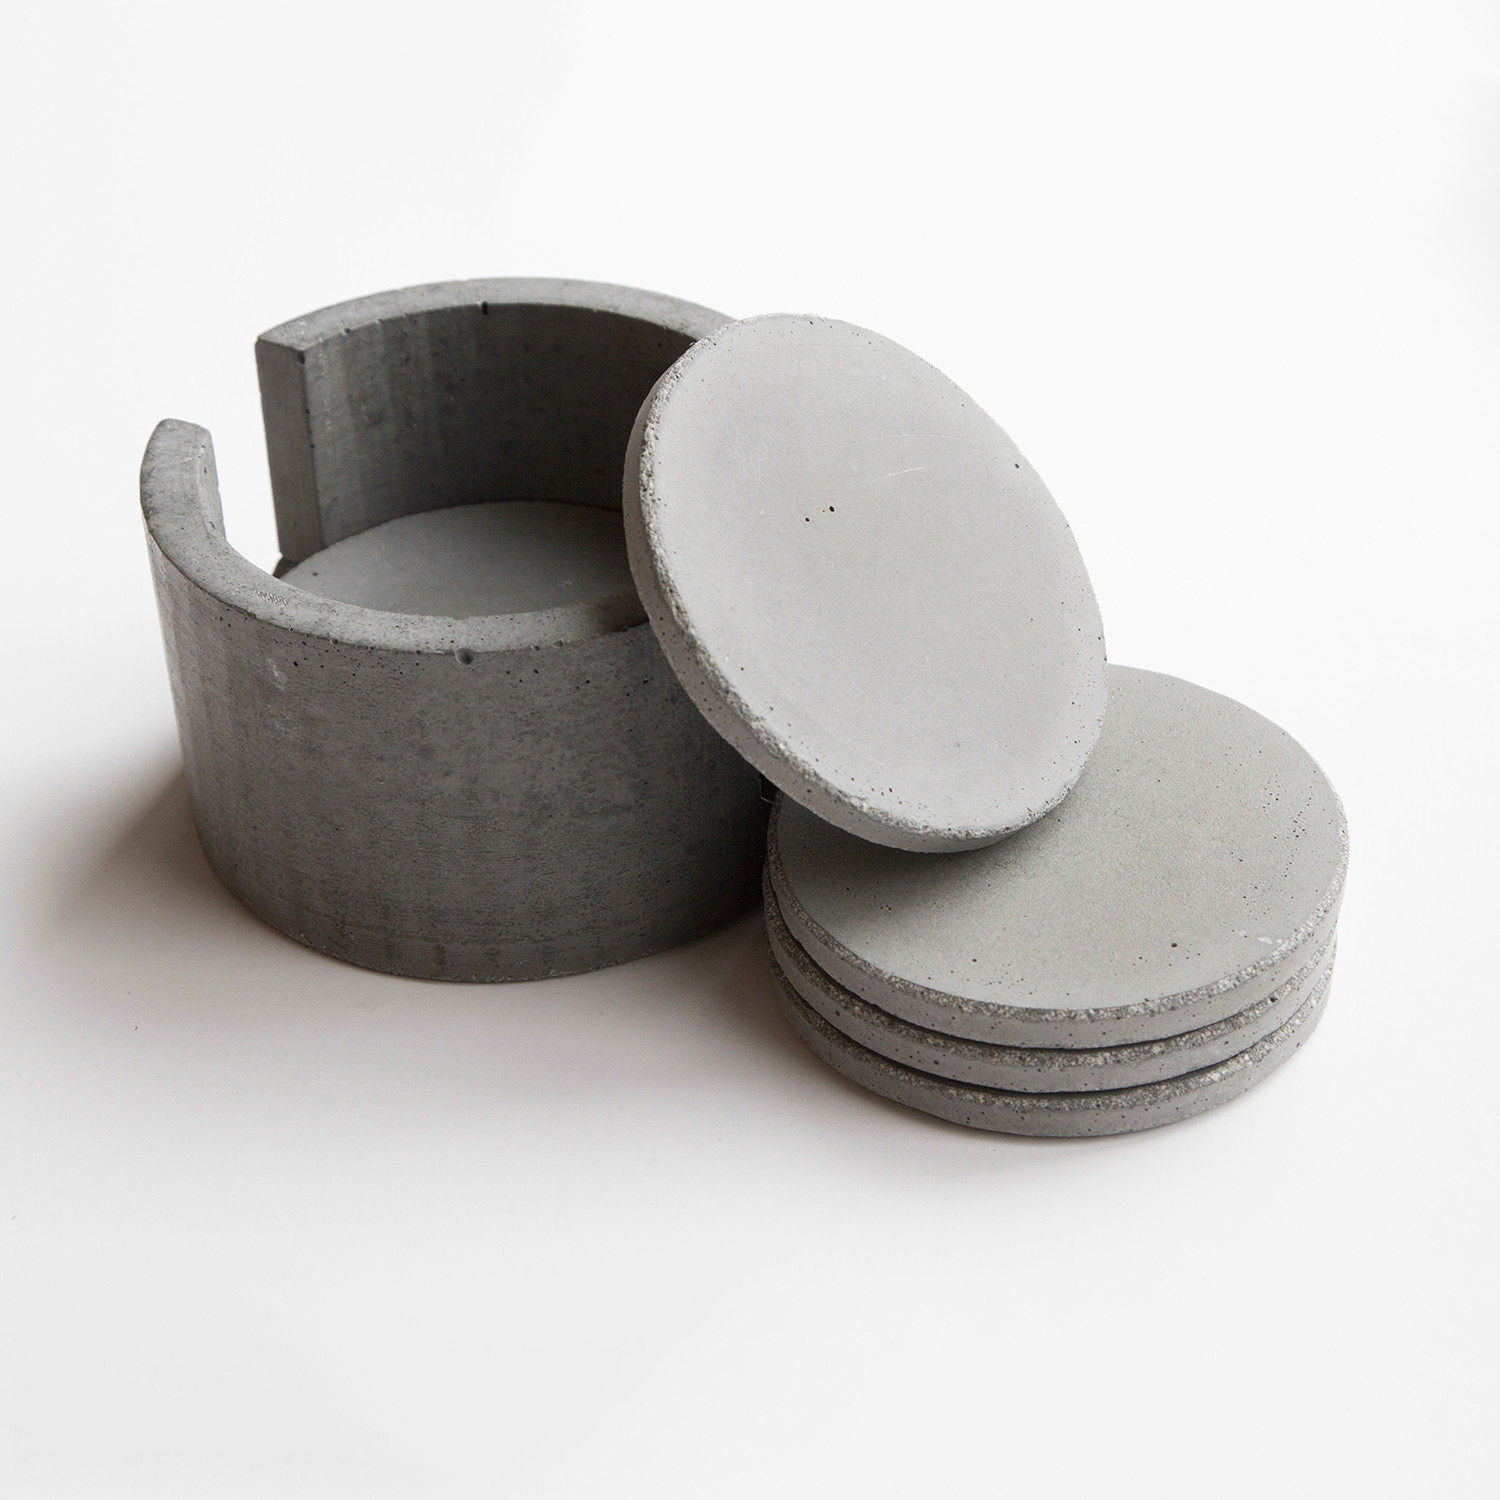 Aly velji x mtharu concrete coaster set white mtharu for How to make concrete coasters